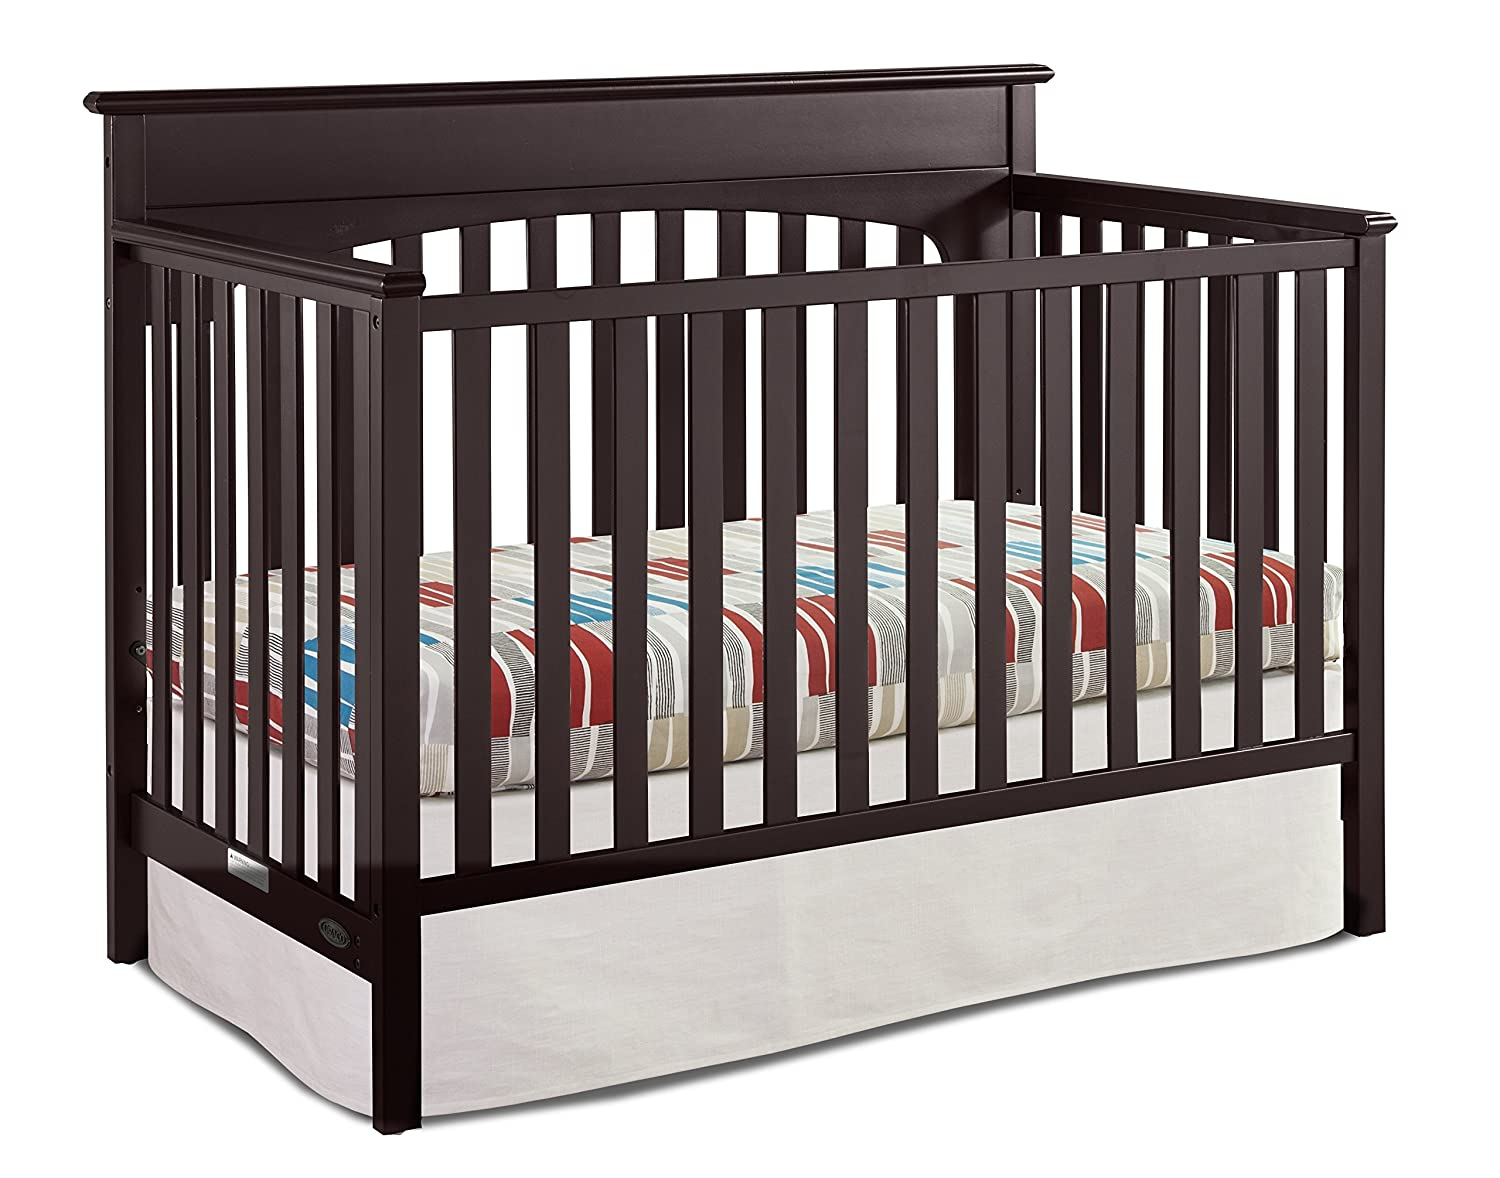 Graco Lauren Convertible Crib, Espresso 04530-369